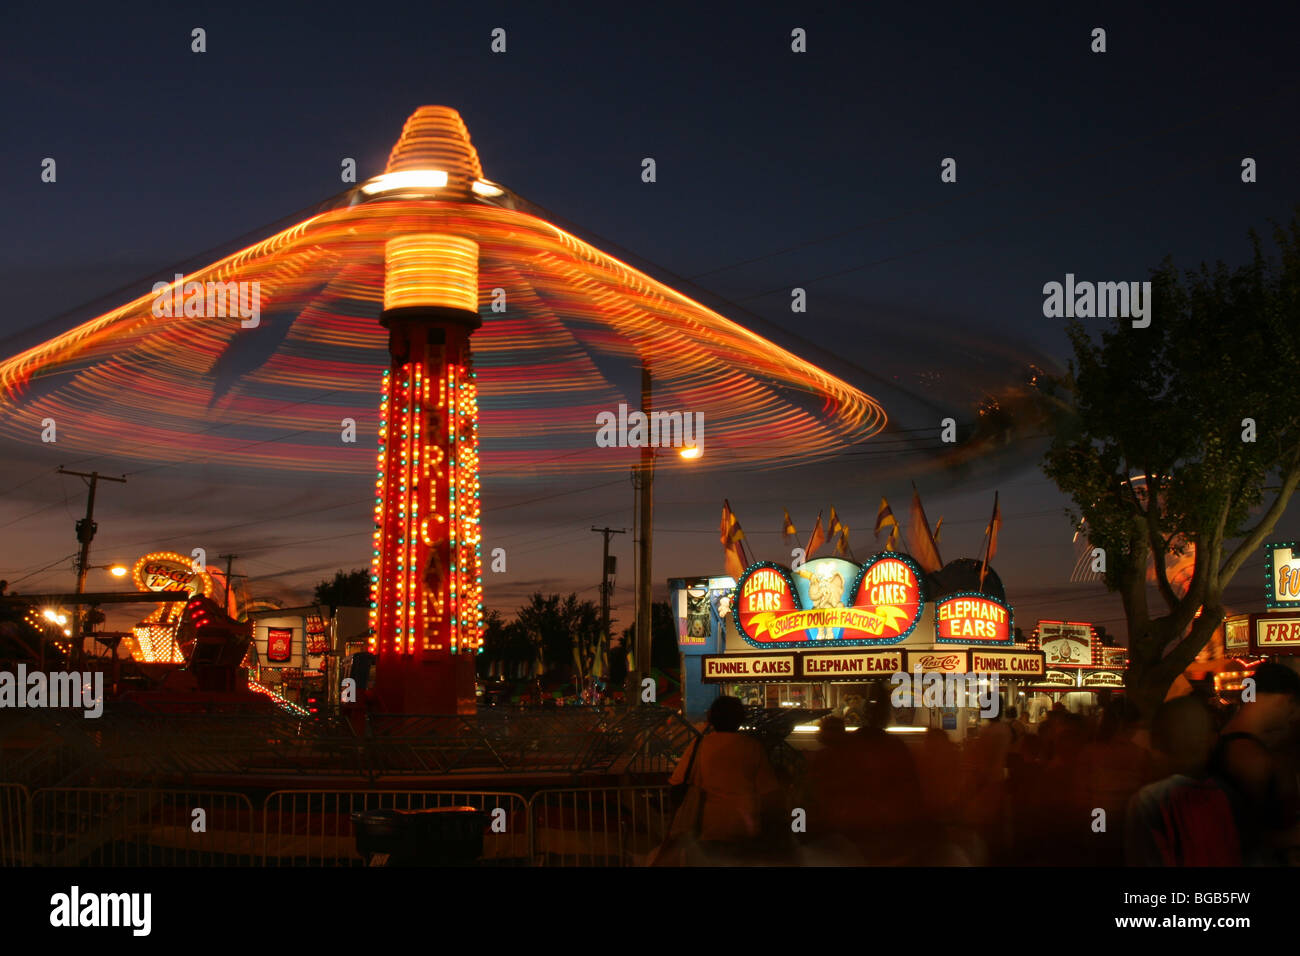 Carnival Rides at Dusk. Canfield Fair. Mahoning County Fair. Canfield, Ohio. - Stock Image